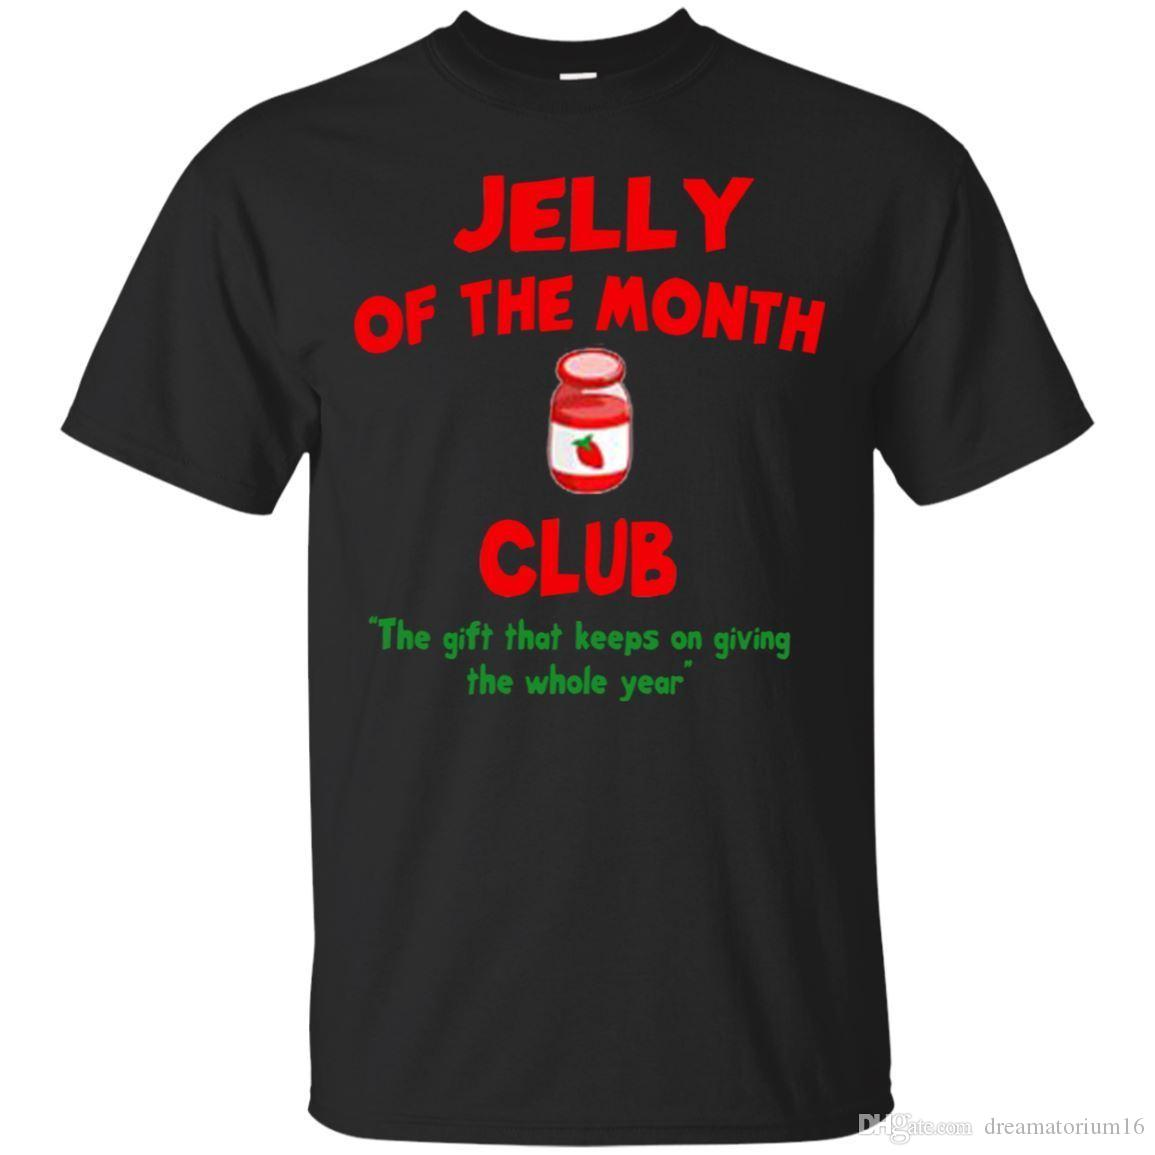 1241a2257 Black T Shirt Jelly Of The Month Club Christmas Vacation Tshirt Size S 6XL T  Shirt Tee Best Funny T Shirts From Dreamatorium16, $11.05| DHgate.Com